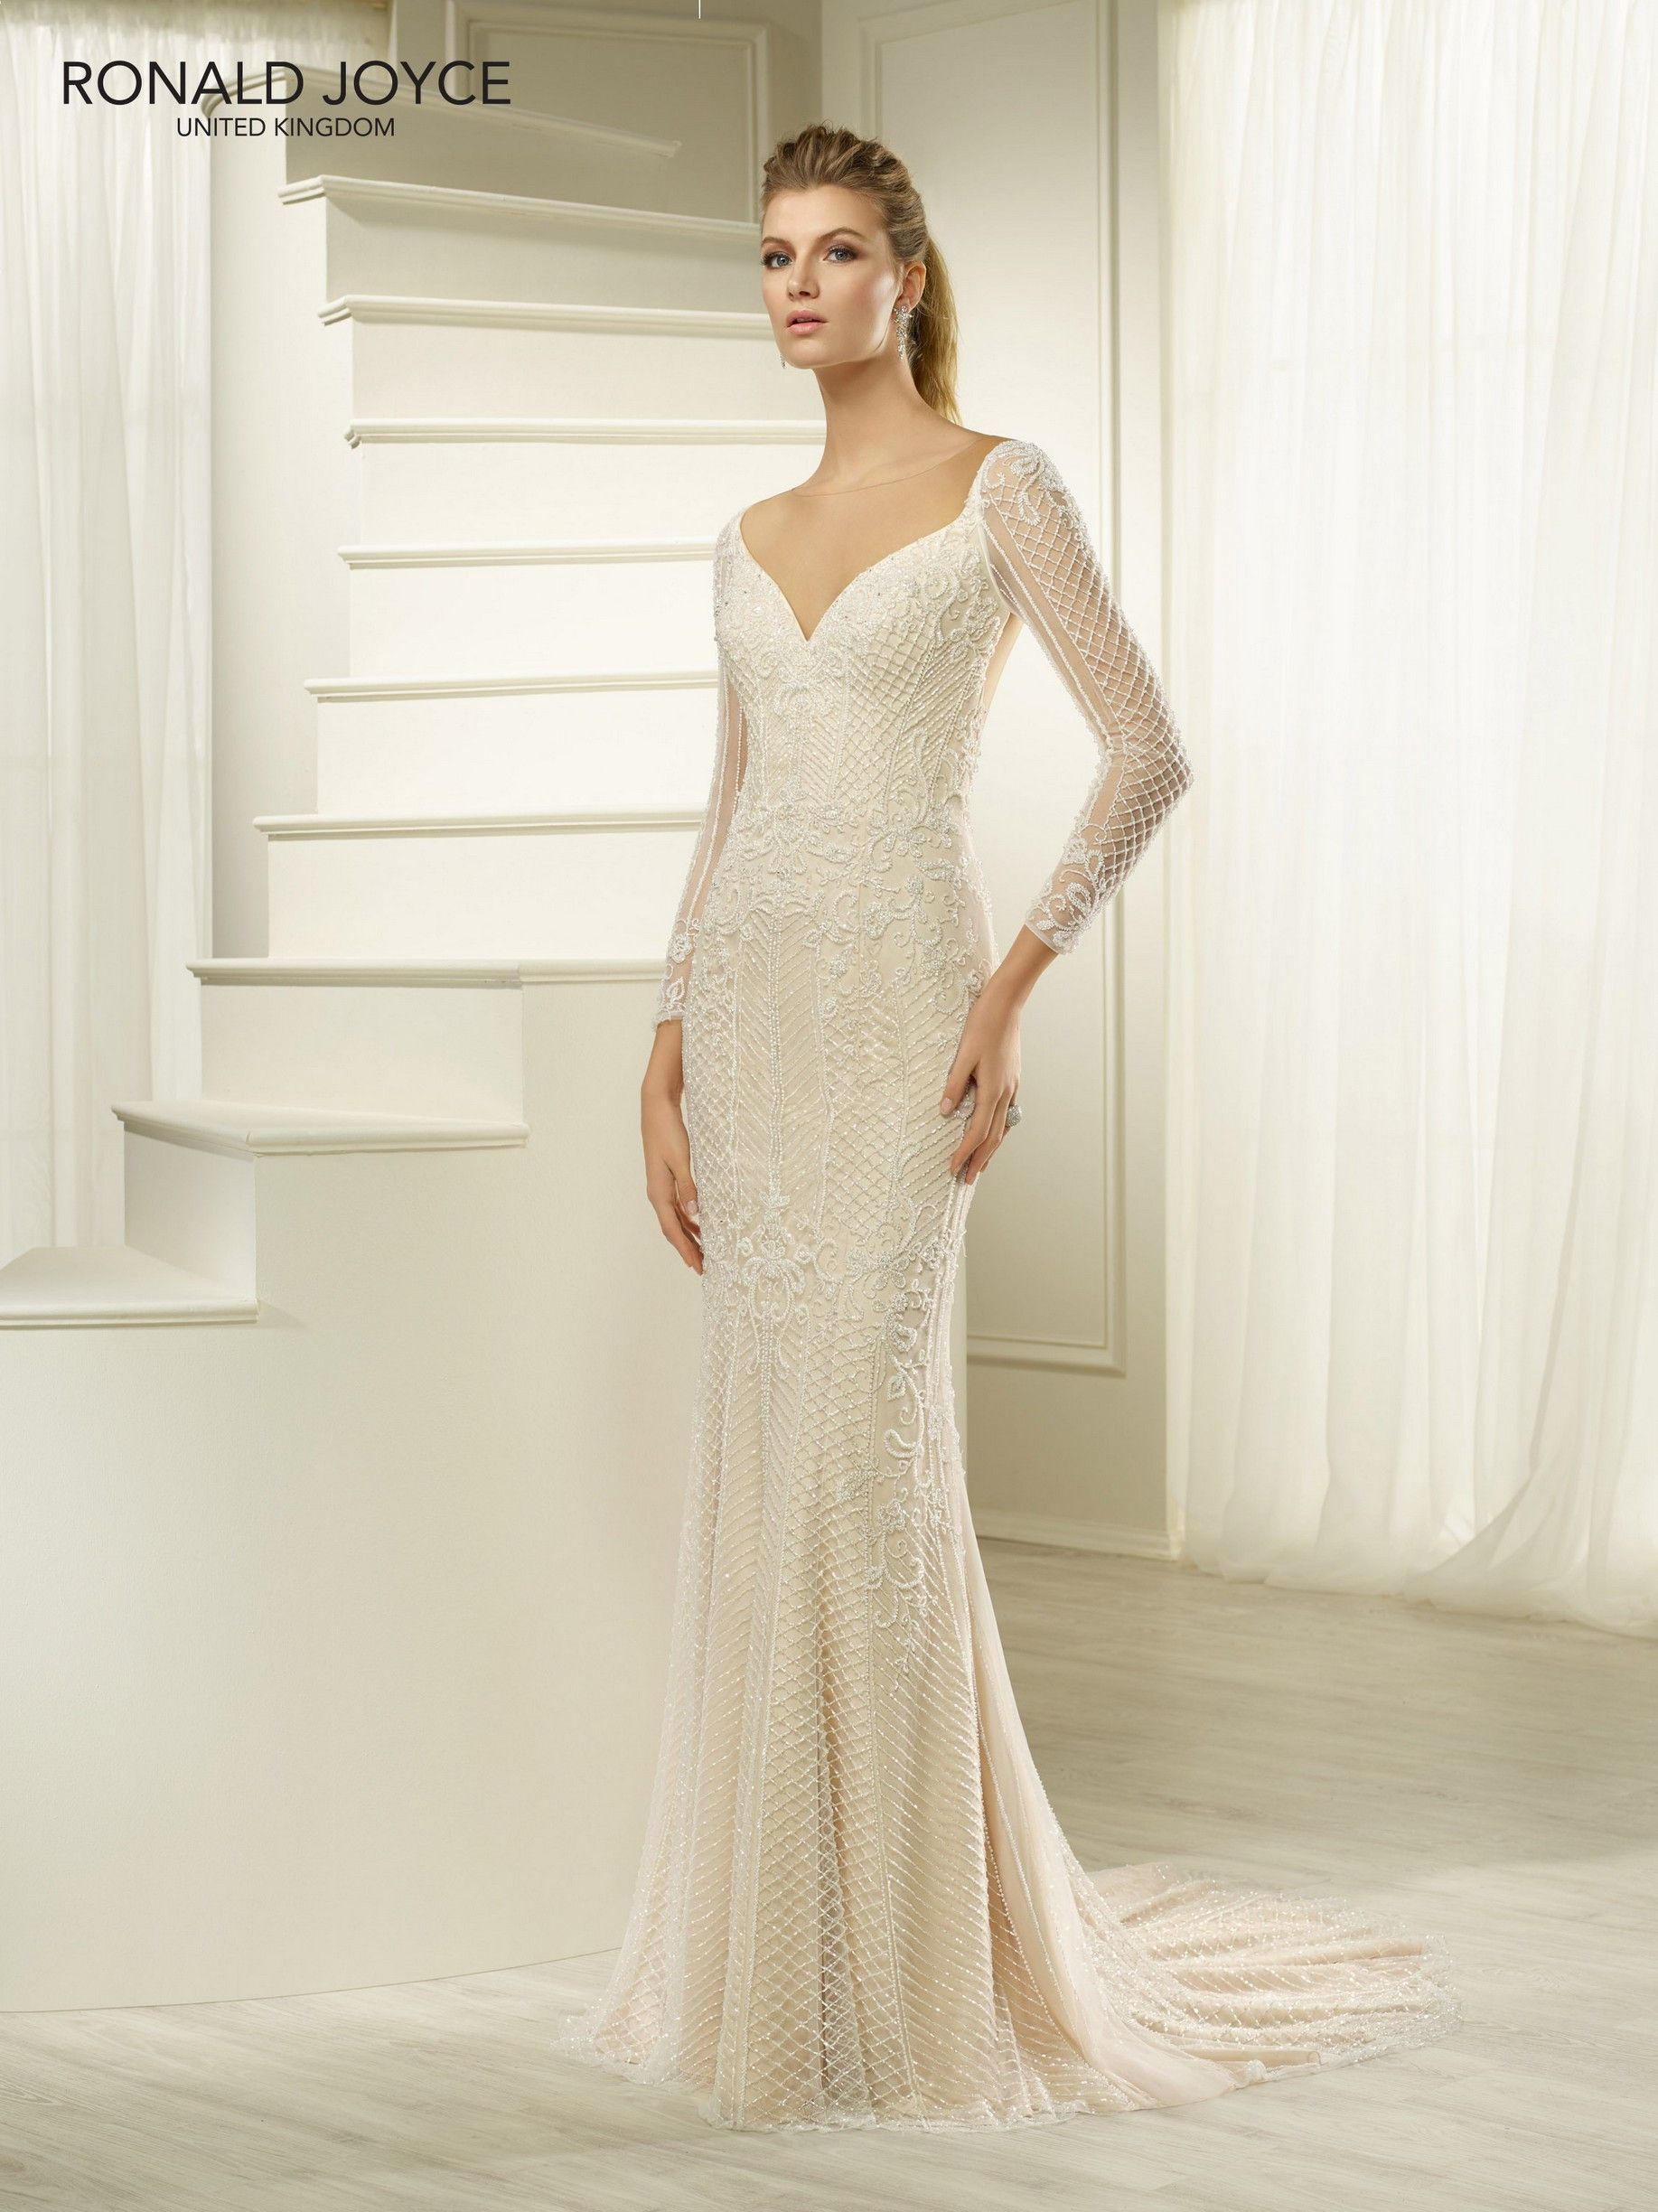 Back out wedding dresses  Ronald Joyce Hatsy wedding dress SLEEVES AND AN ILLUSION CUTOUT